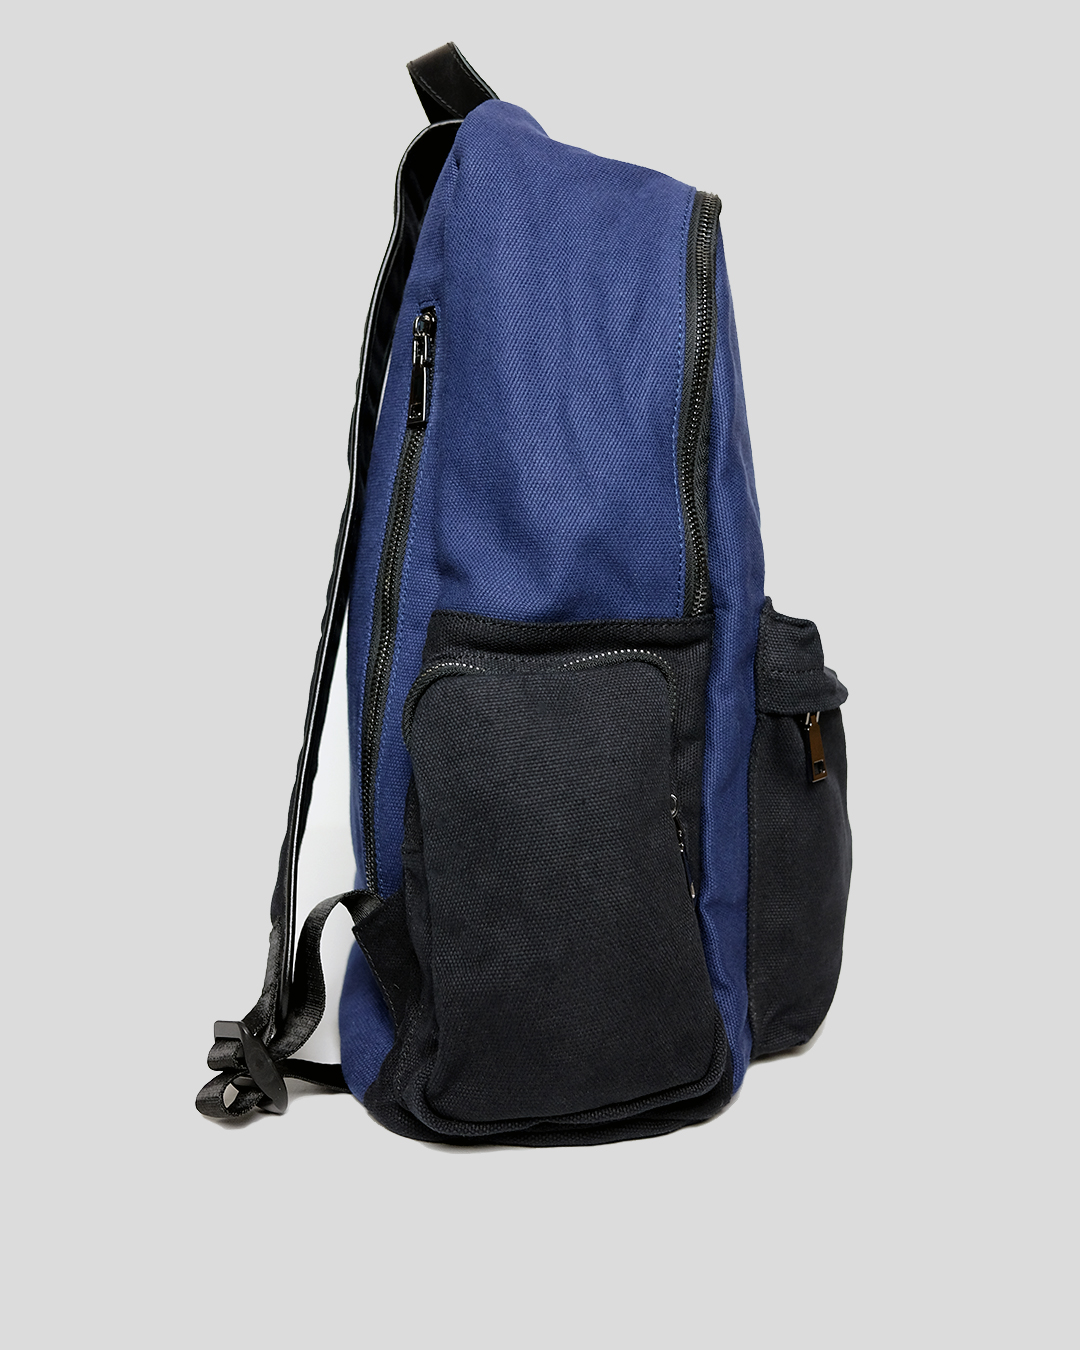 photo-2-BLUE-COTTON-BACKPACK-URBANE-MUSE-CHRIS-SMITH